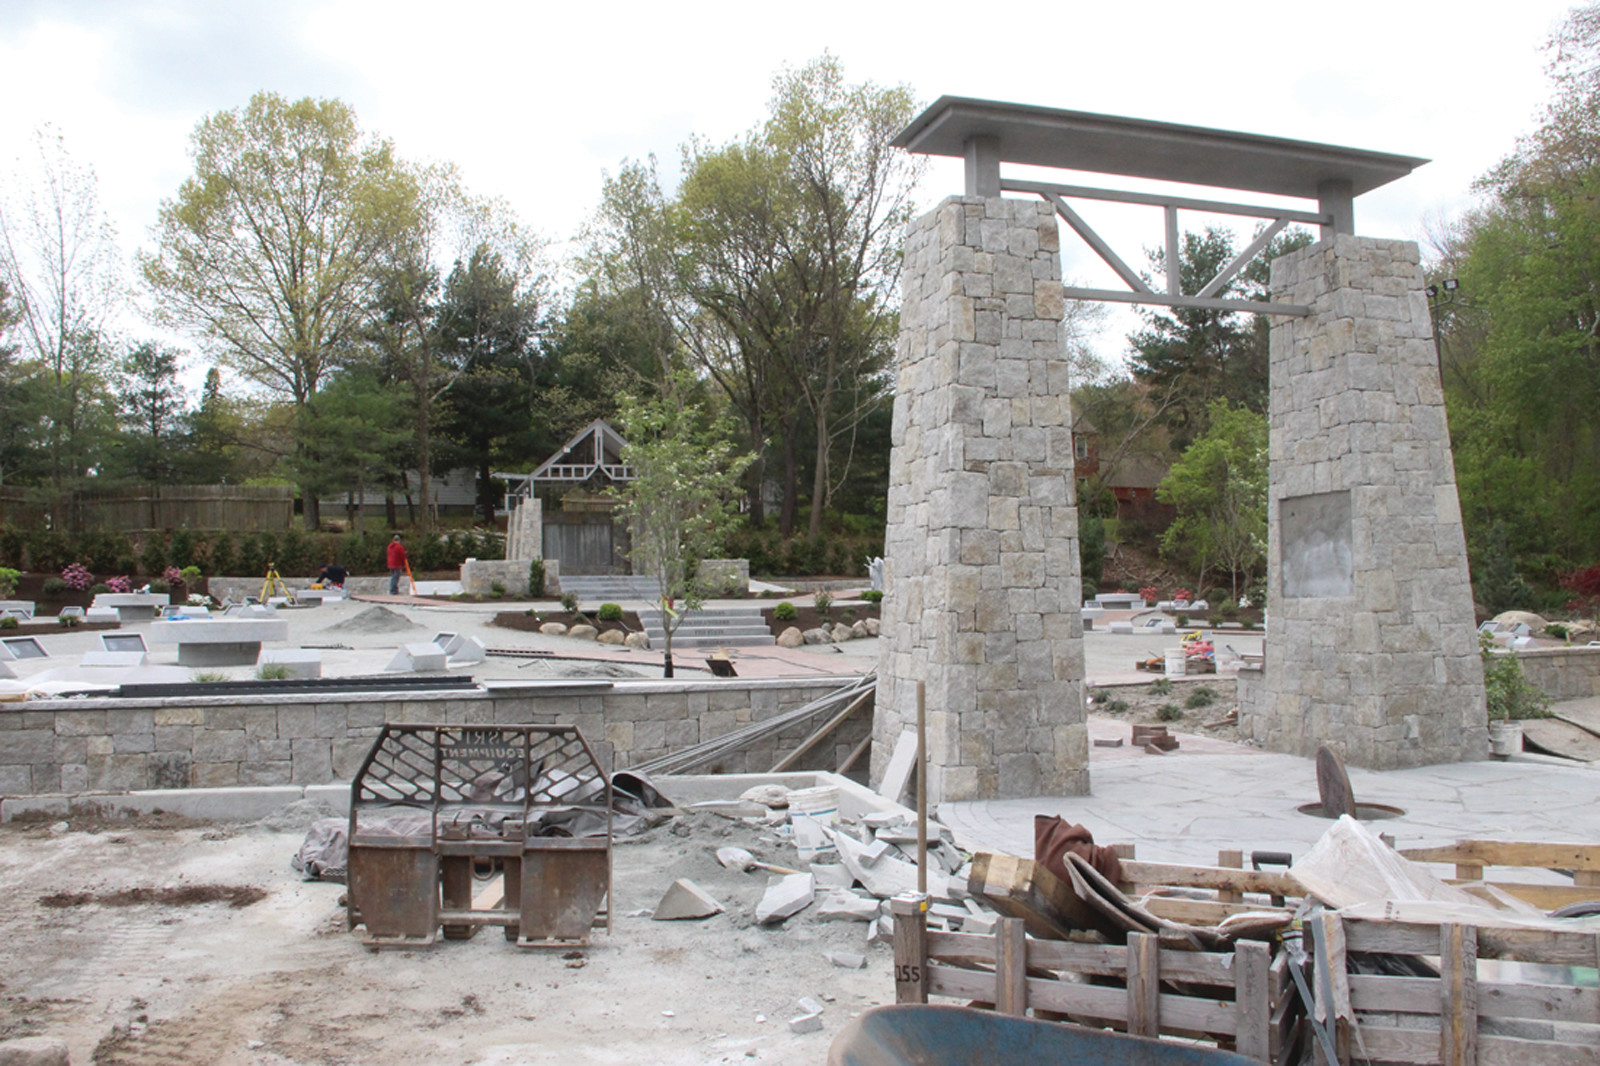 GATEWAY: Stone pillars serve as the entrance to the park. There is limited parking at the park that will be accessible year-round. The fundraising campaign included the creation of reserves to maintain the park in the years to come.